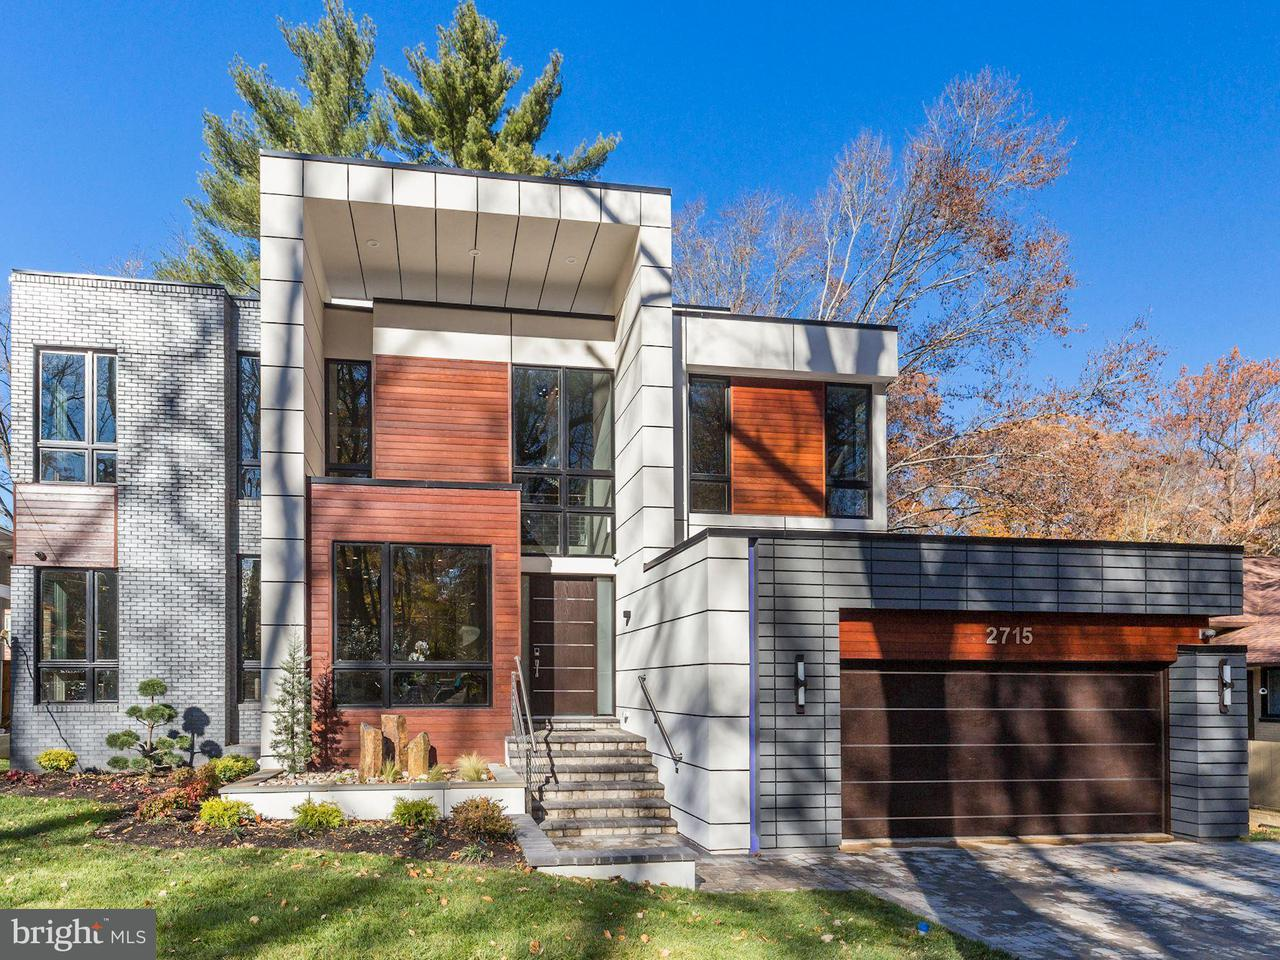 Single Family Home for Sale at 2715 TENNYSON ST NW 2715 TENNYSON ST NW Washington, District Of Columbia 20015 United States